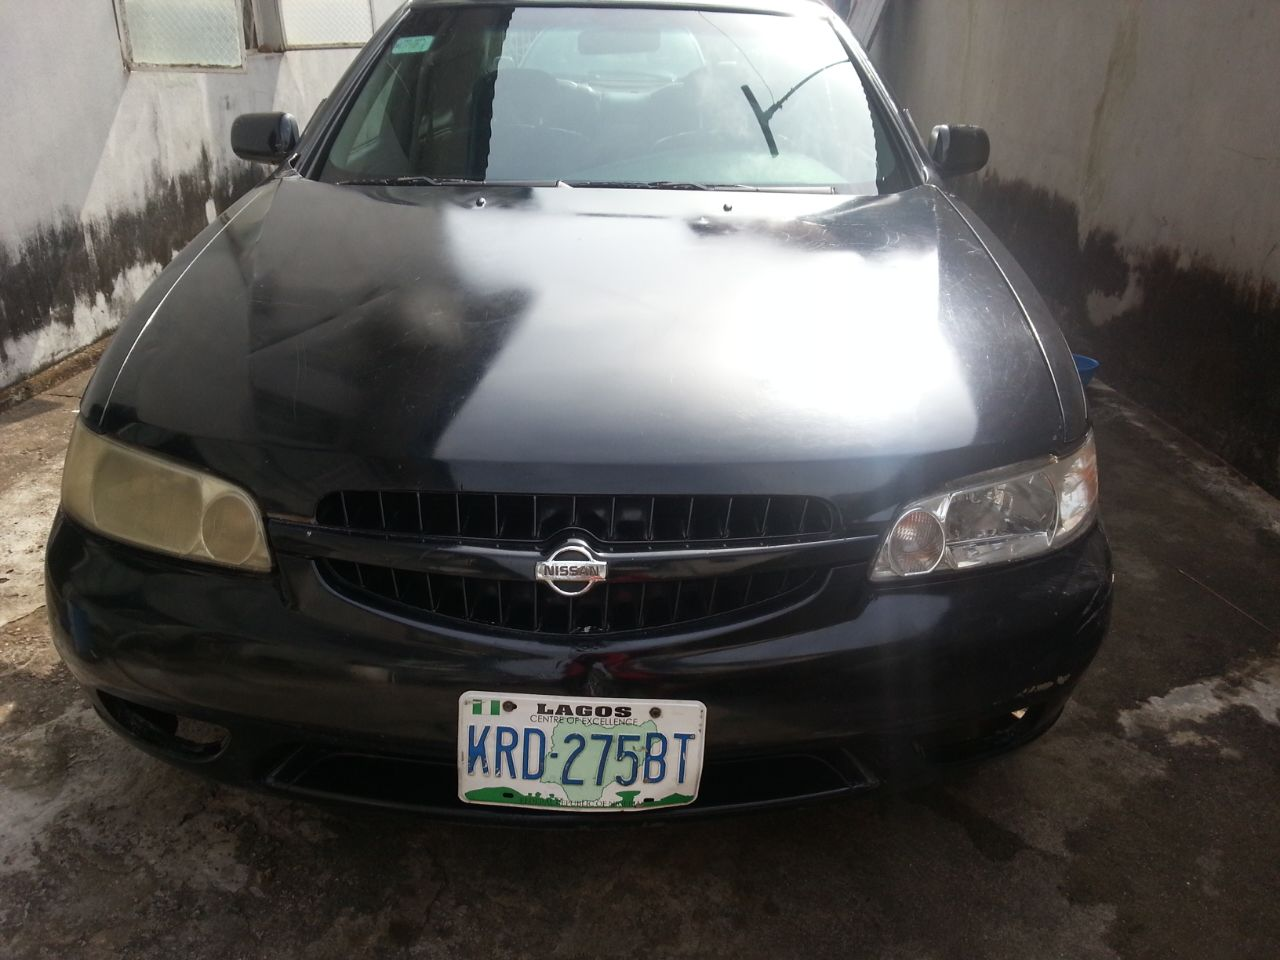 Neatly Used Registered 2001 Nissan Altima Black Leather